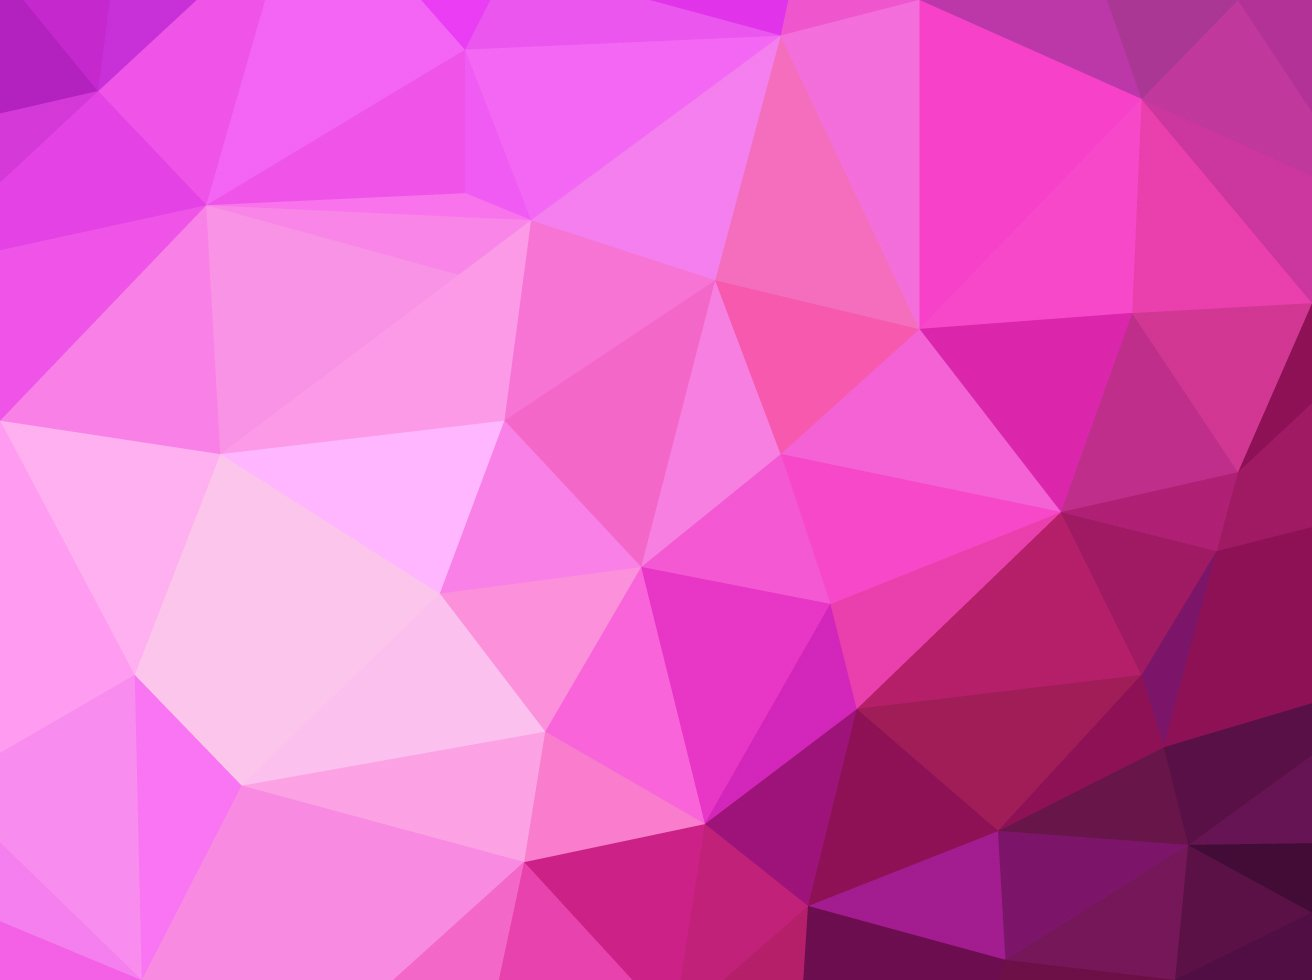 1312x980 Free Pink Background Vector Vector Art Amp Graphics